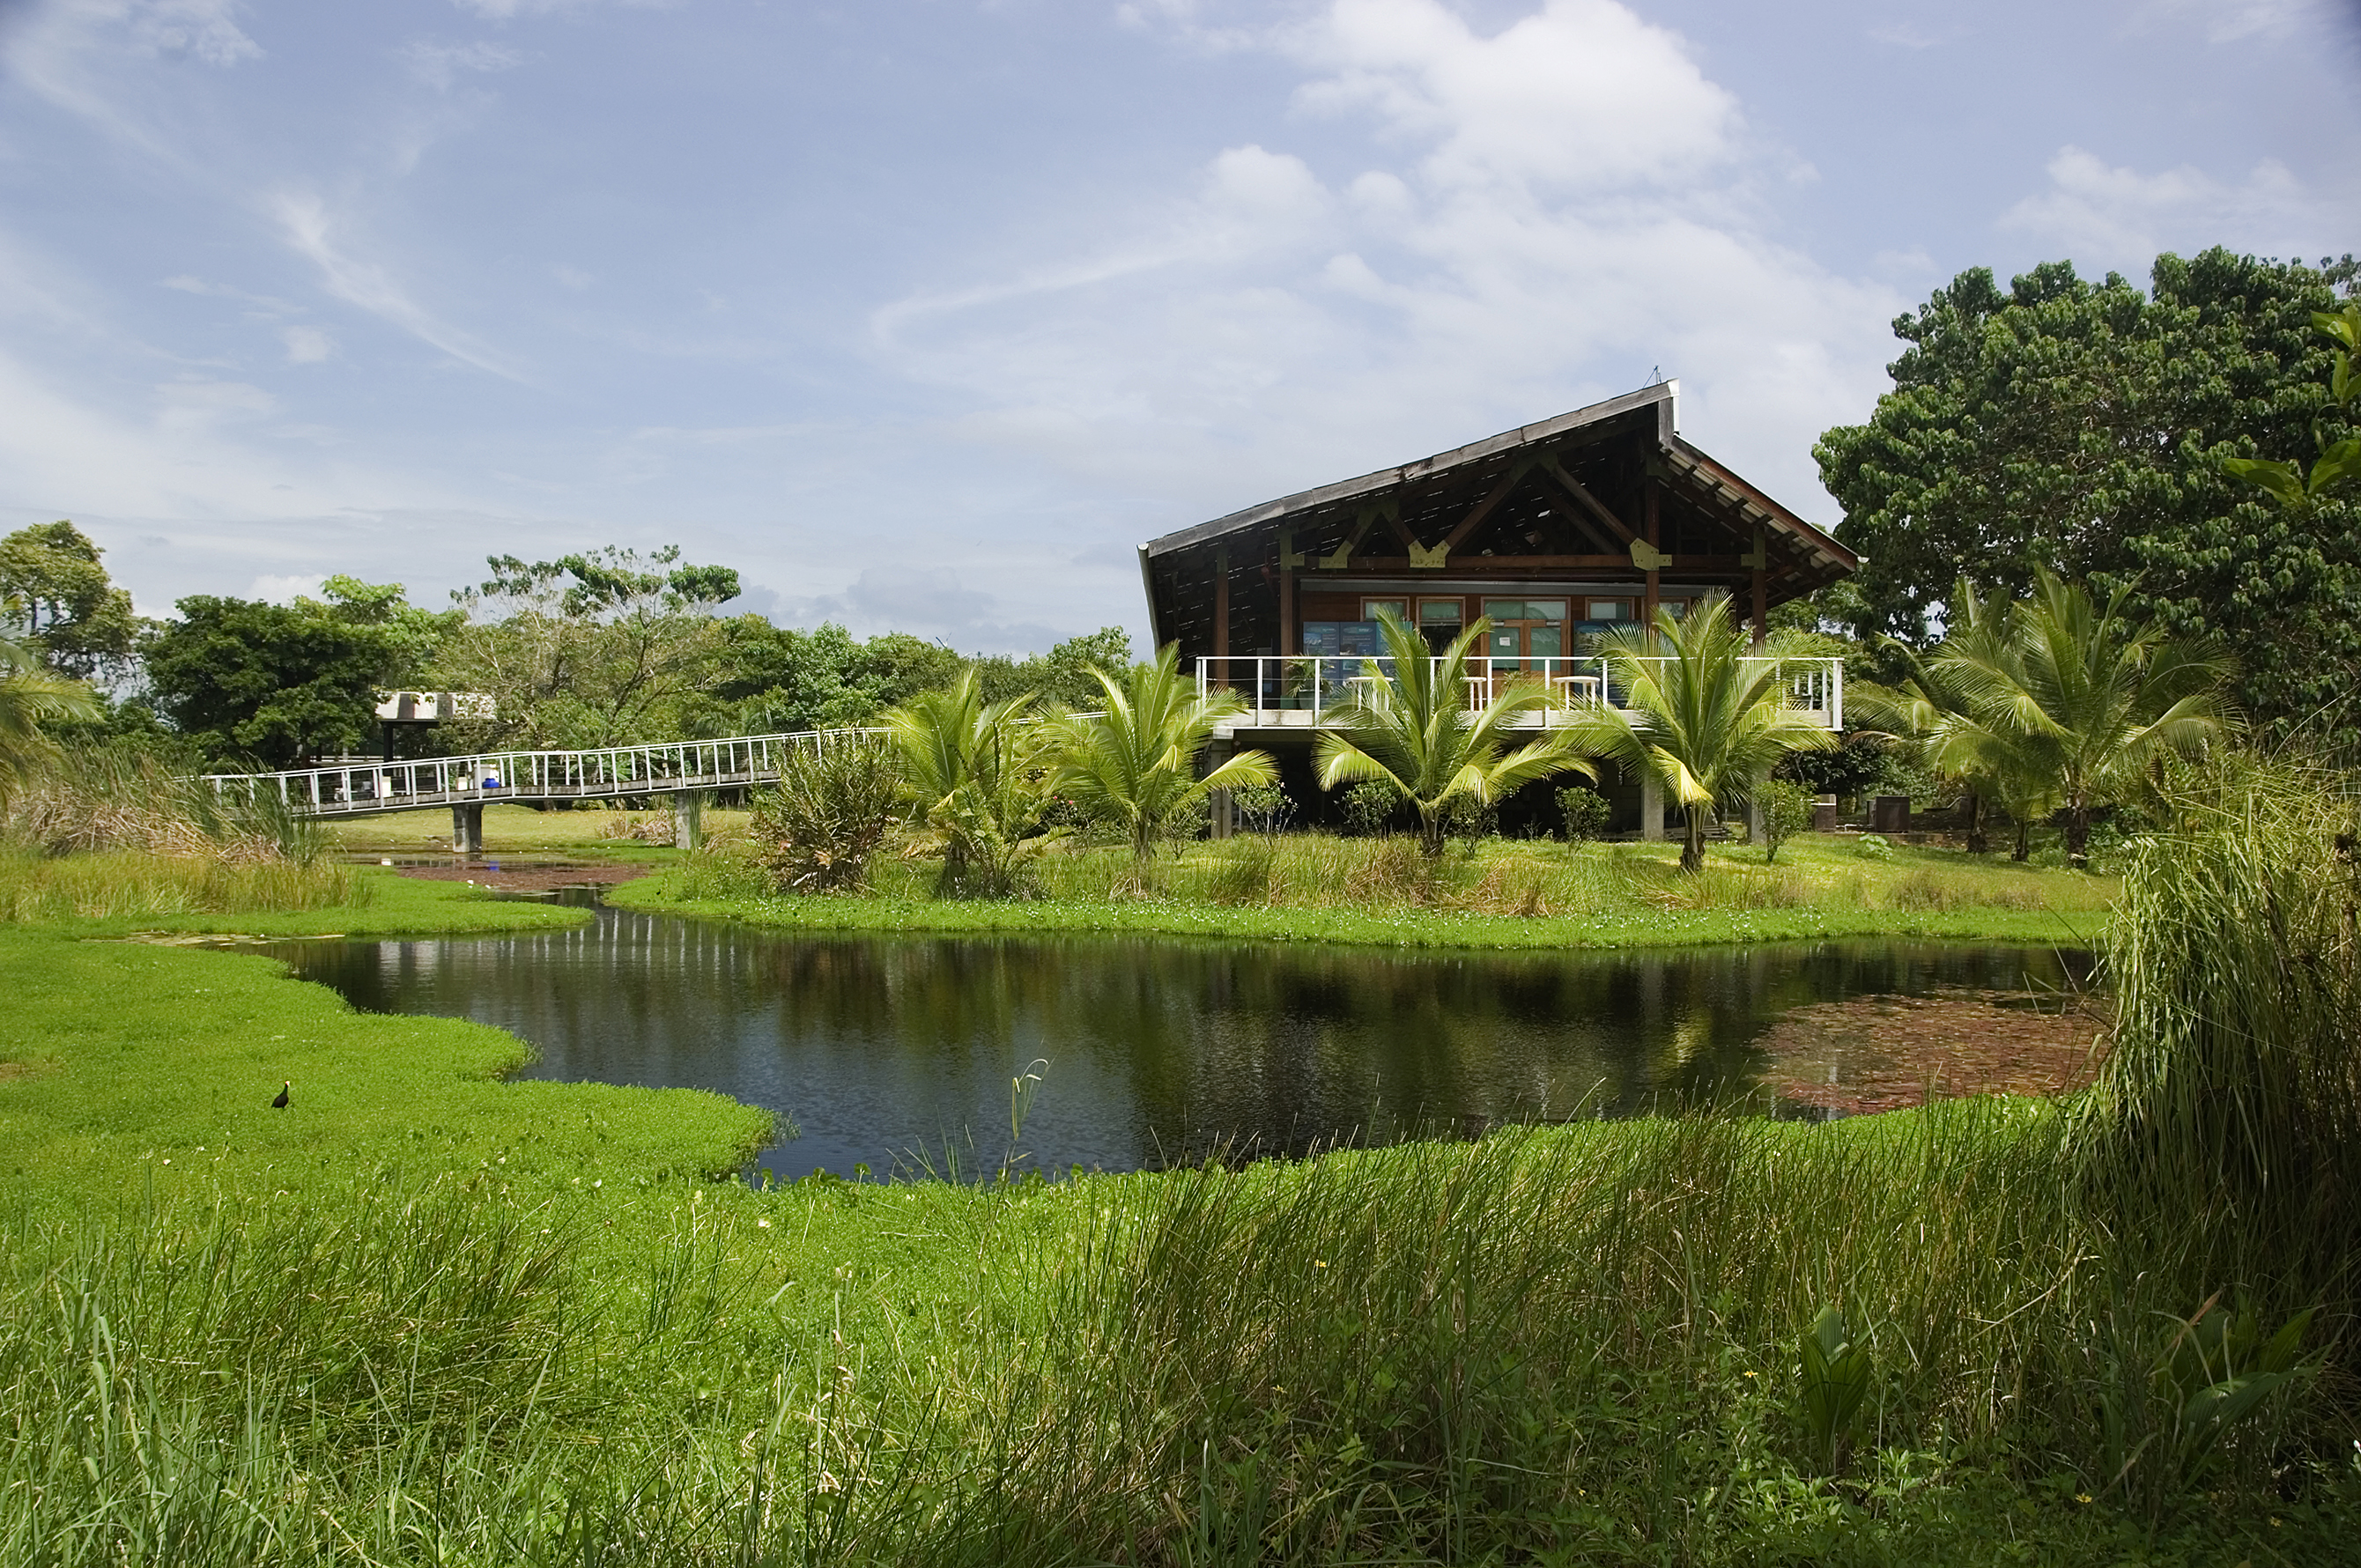 Smithsonian Tropical Research Institute